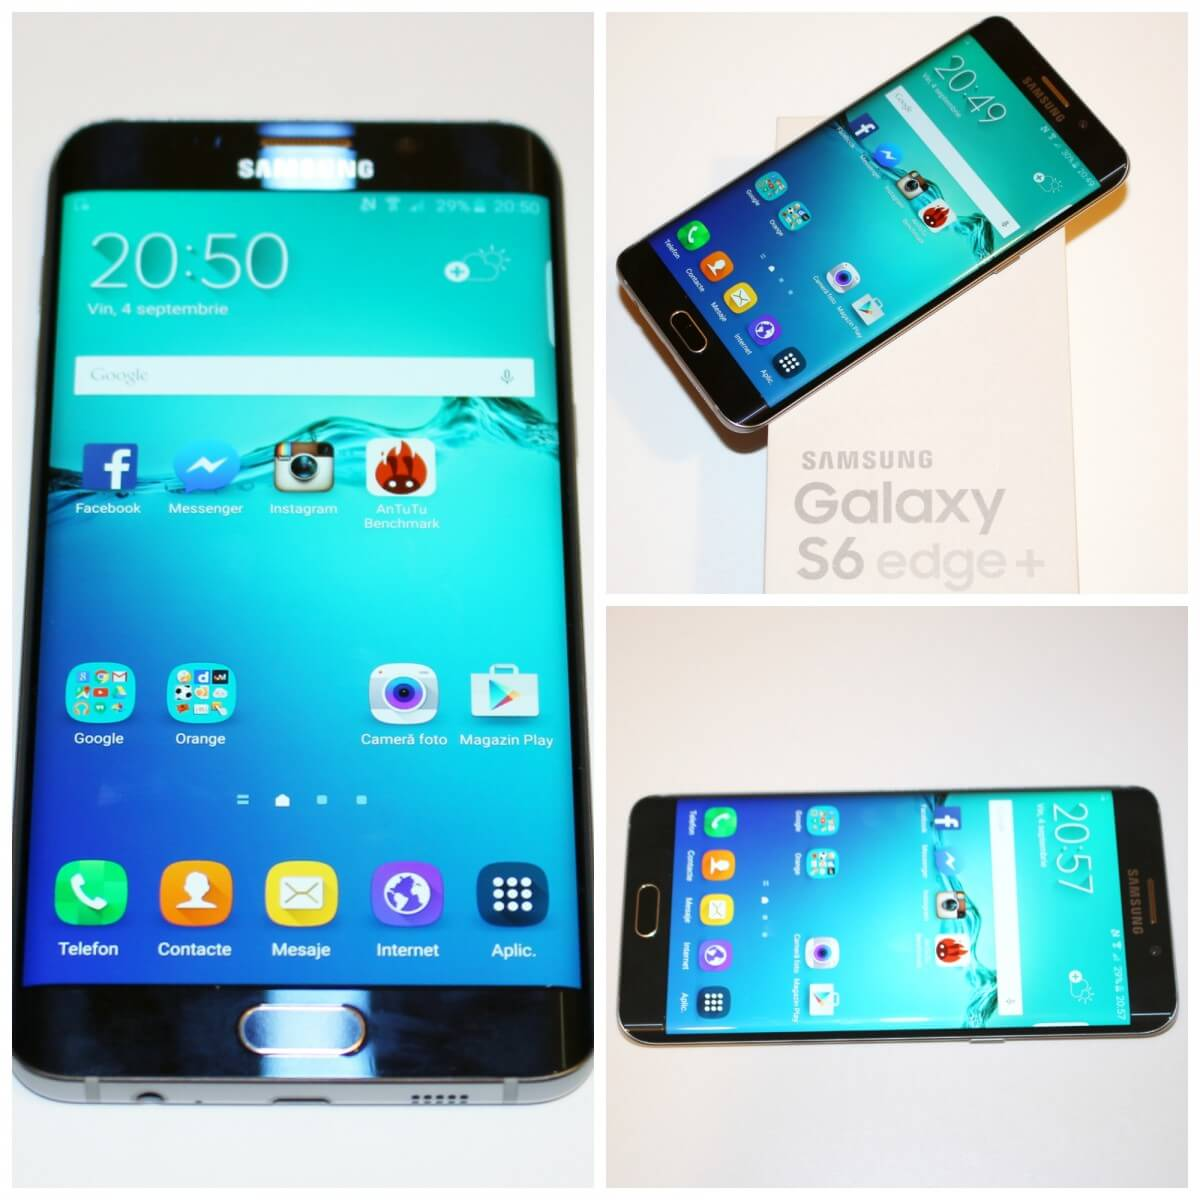 Samsung Galaxy S6 Edge+ (11)